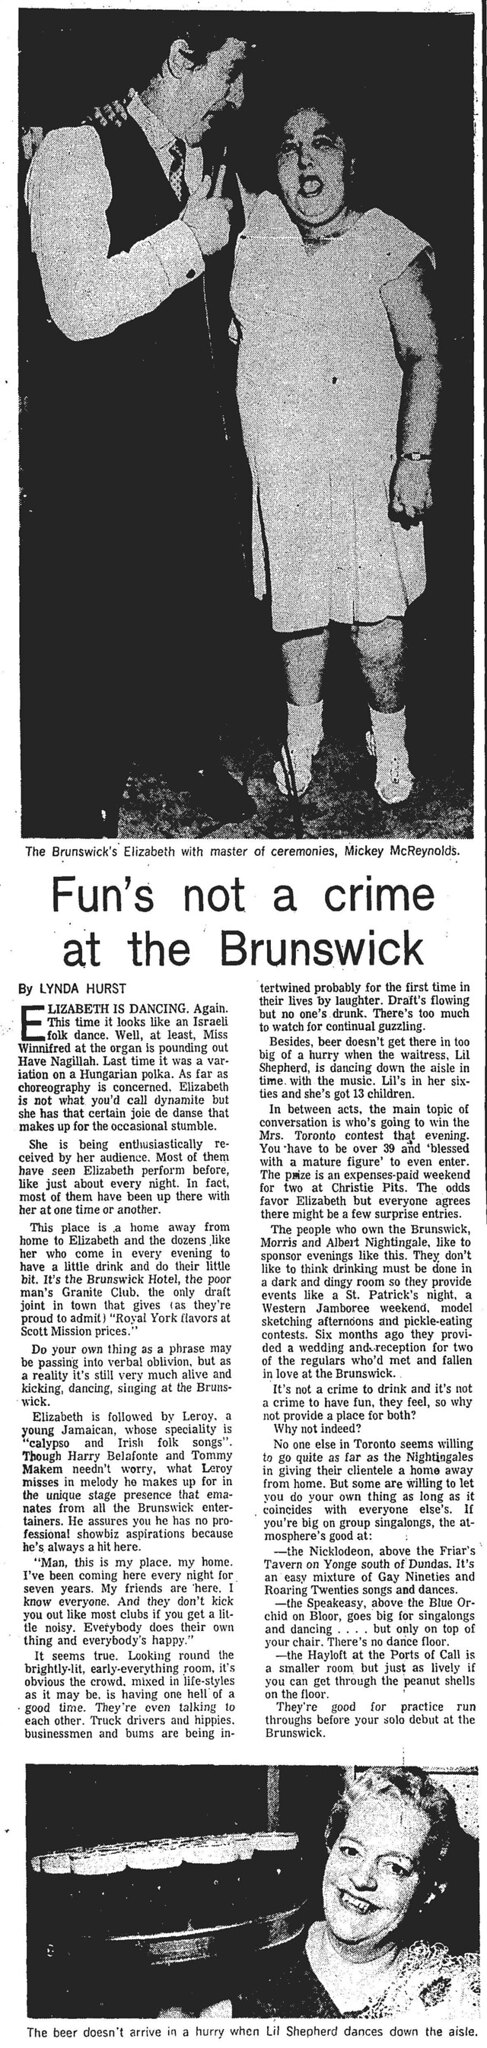 gm 1970-07-25 fun's not a crime